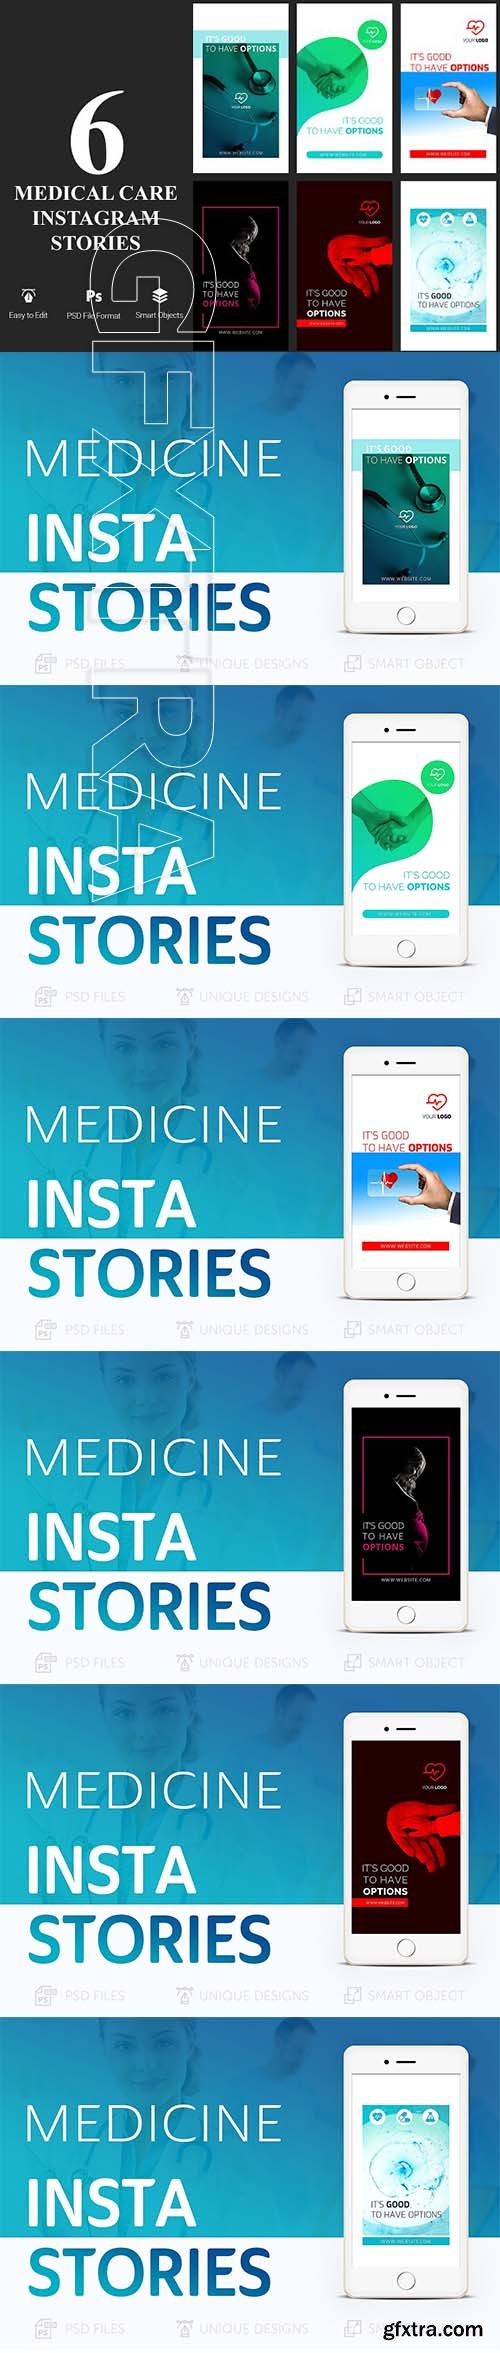 CreativeMarket - 6 Medical Care Instagram Stories 2576861